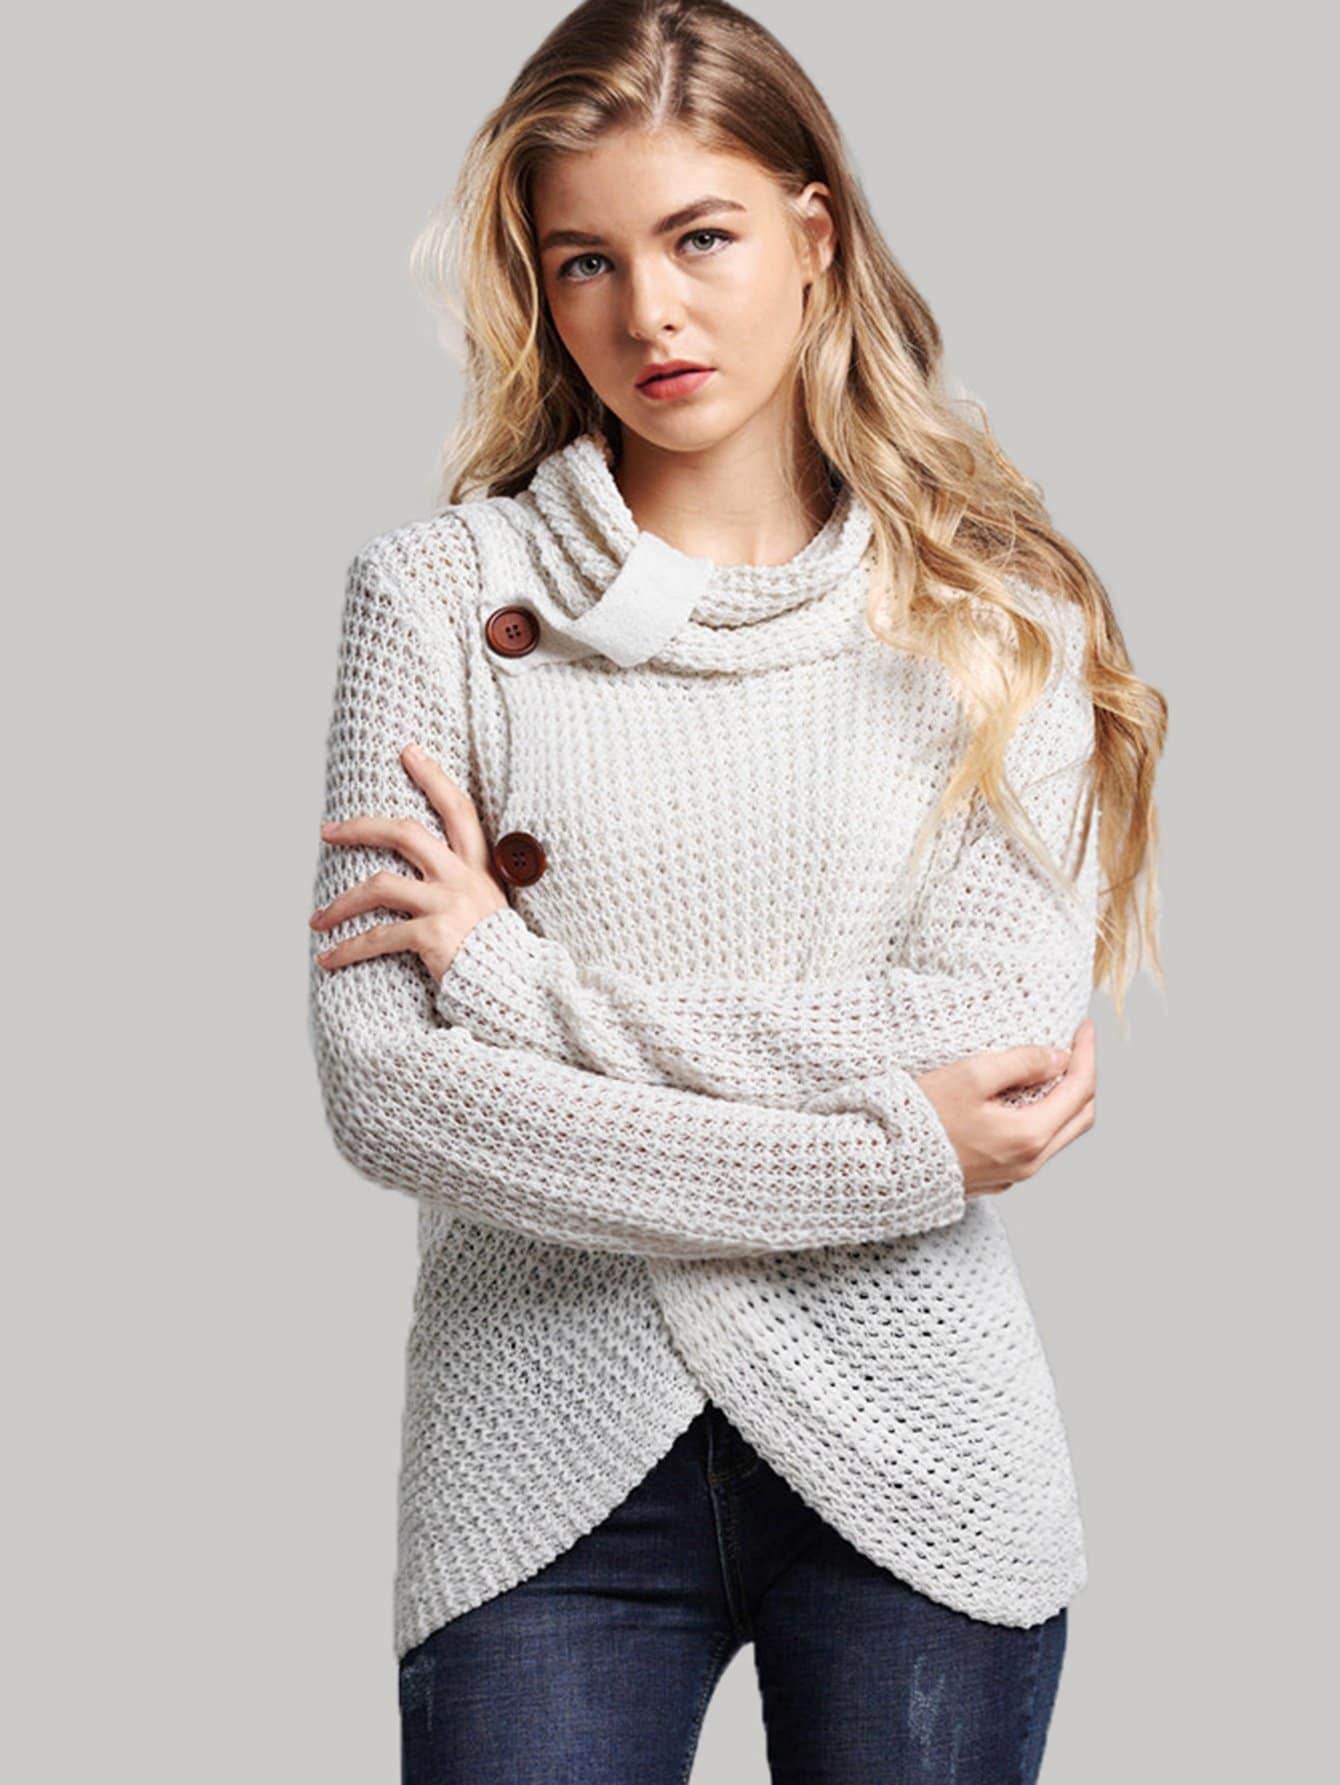 White High Neck Overlap Sweater | Sweater | SHEIN | Joan & Vern's Apparel